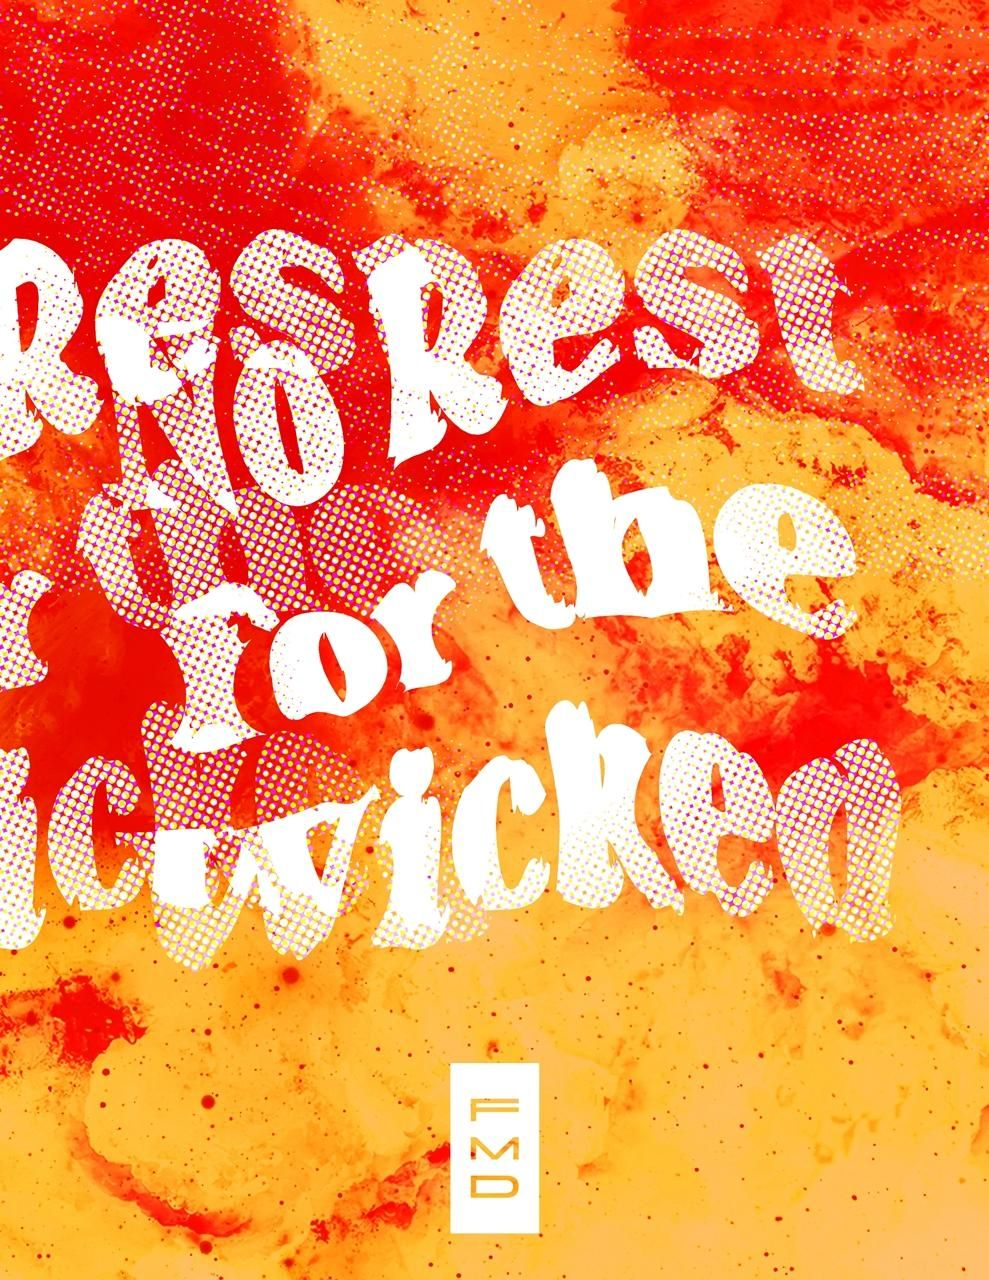 No Rest for the Wicked - image 1 - student project